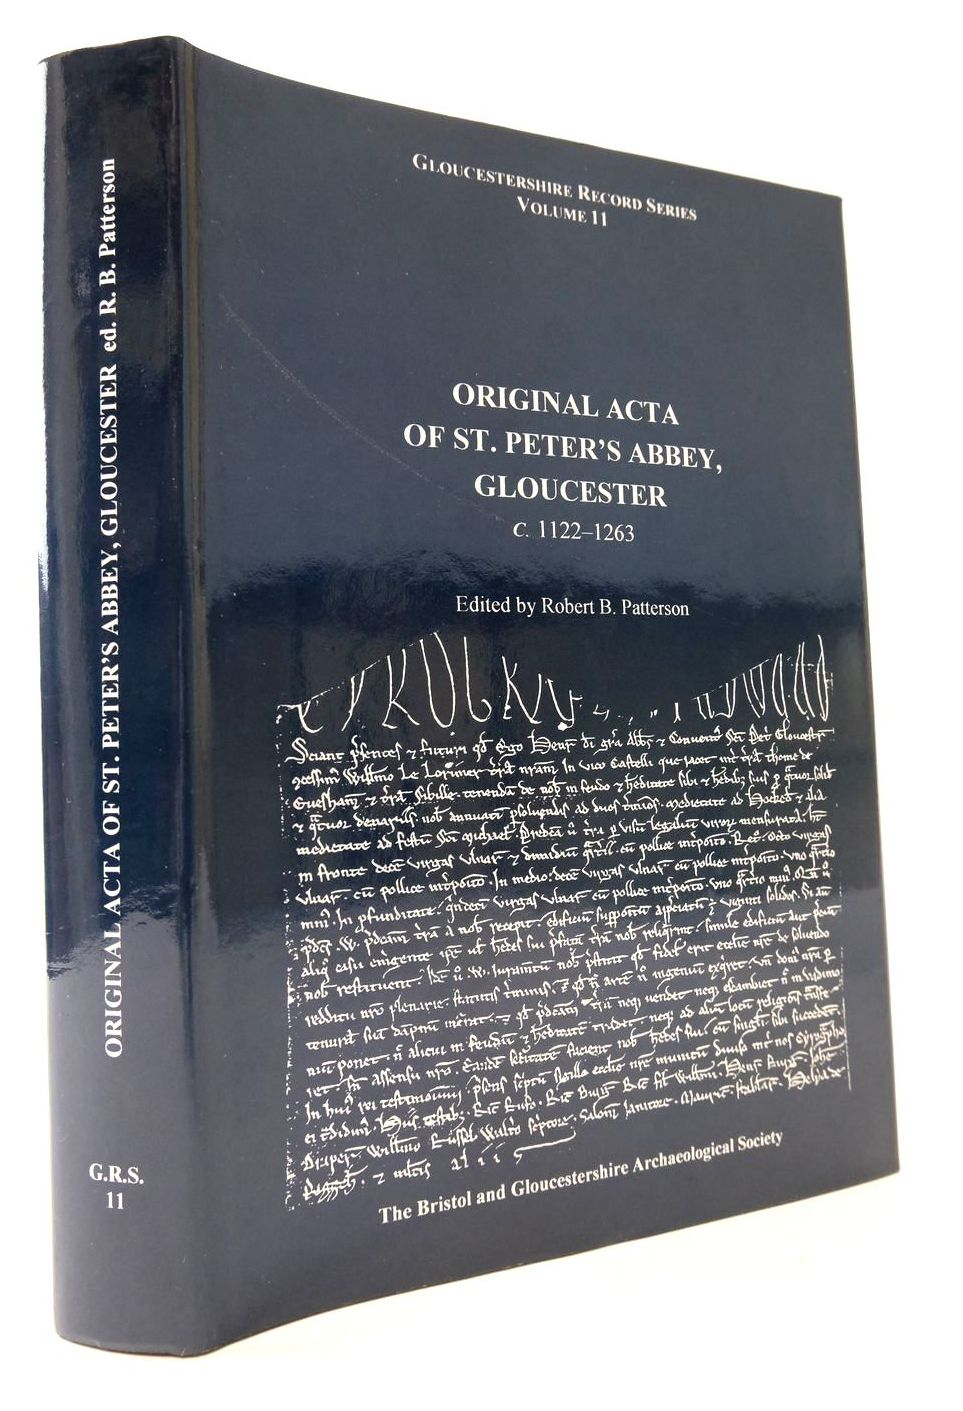 Photo of ORIGINAL ACTA OF ST. PETER'S ABBEY GLOUCESTER C. 1122-1263 written by Patterson, Robert B. published by Bristol and Gloucestershire Archaeological Society (STOCK CODE: 2133261)  for sale by Stella & Rose's Books